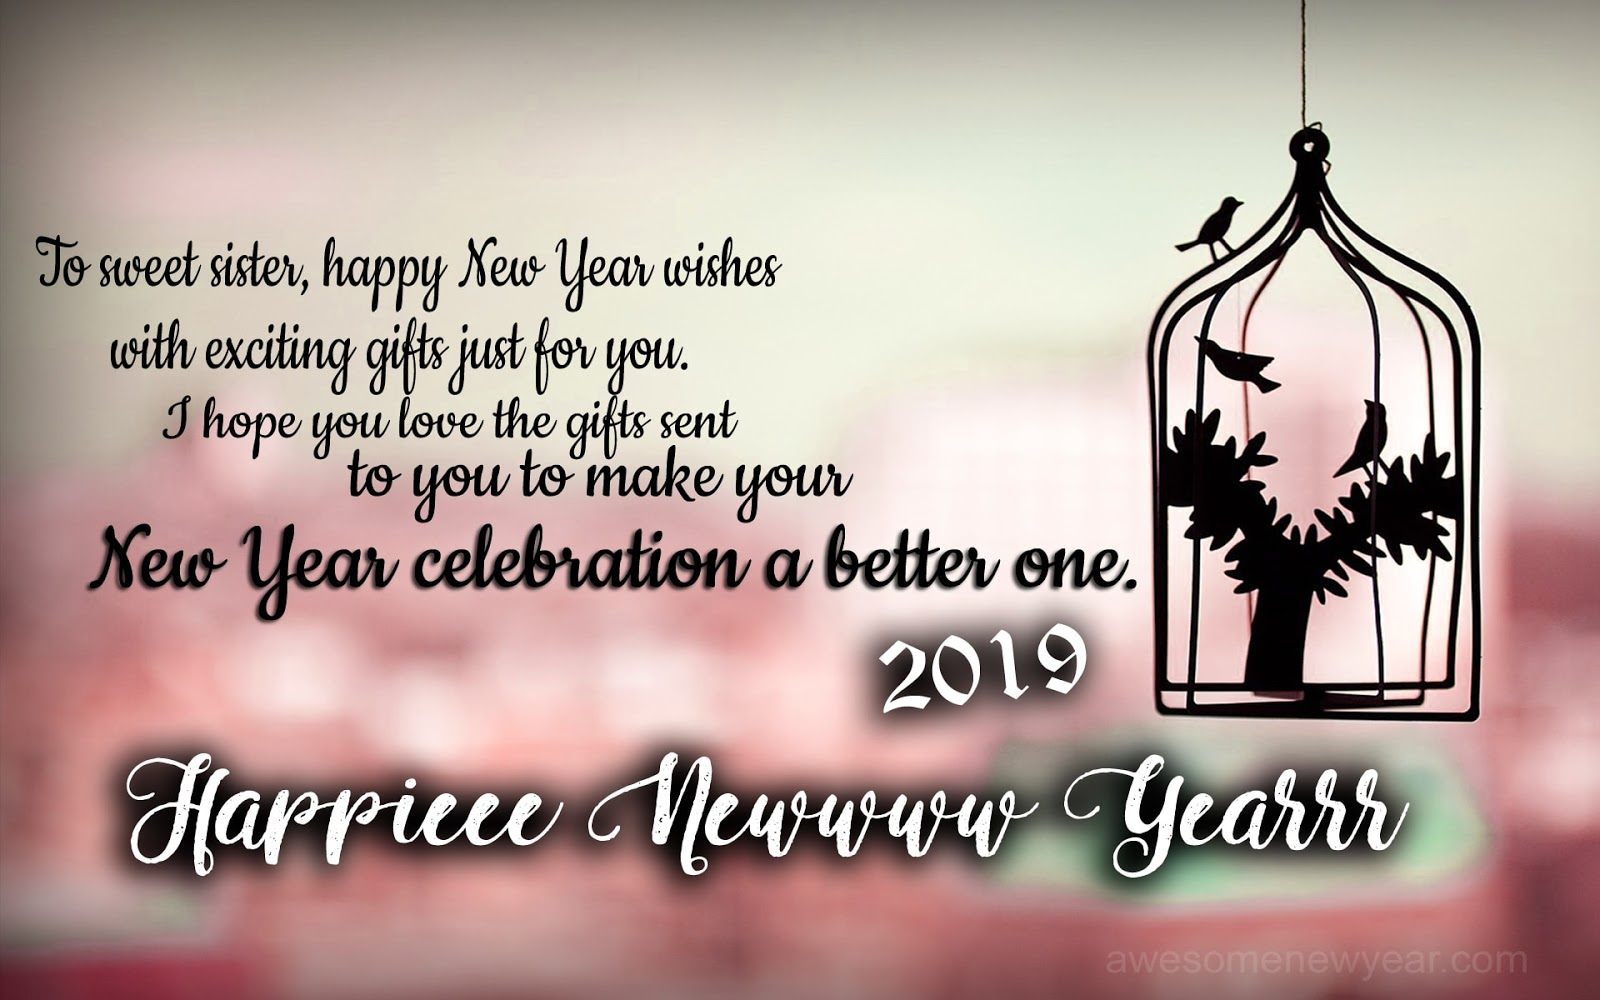 Happy New Year 2019 Quotes for Sister | Latest New Year Wishes